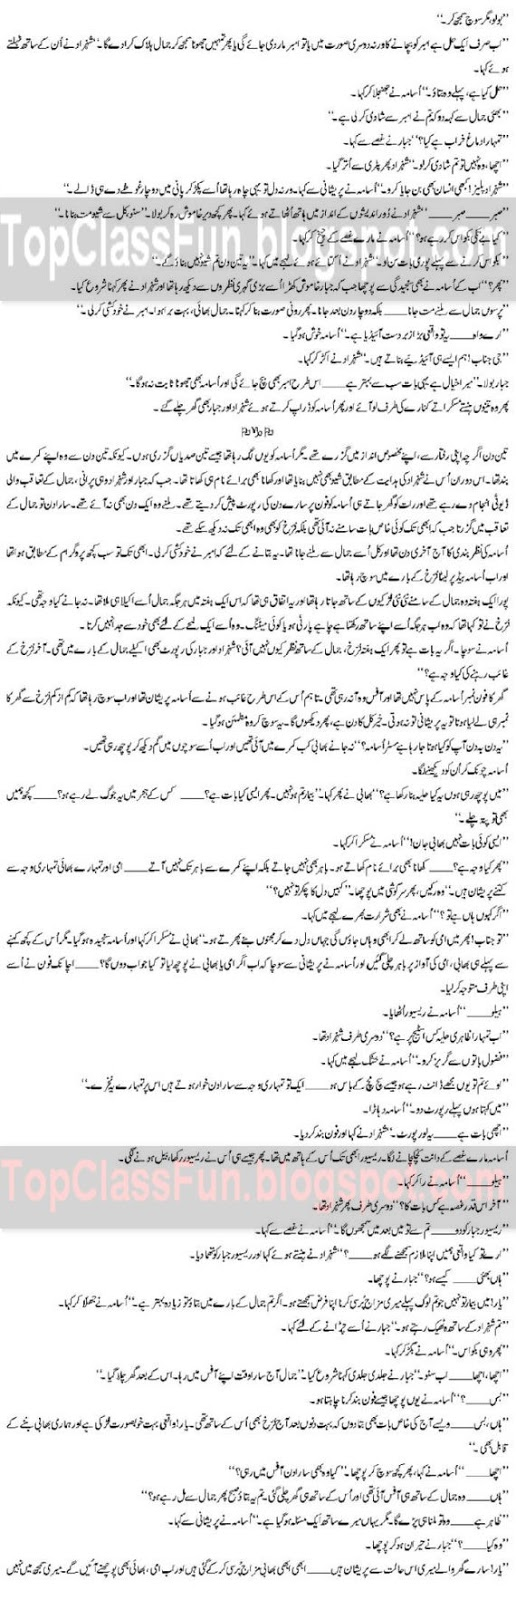 Romantic Urdu Novel - MOHABBAT – By Shahina Chanda Mehtab Page 11